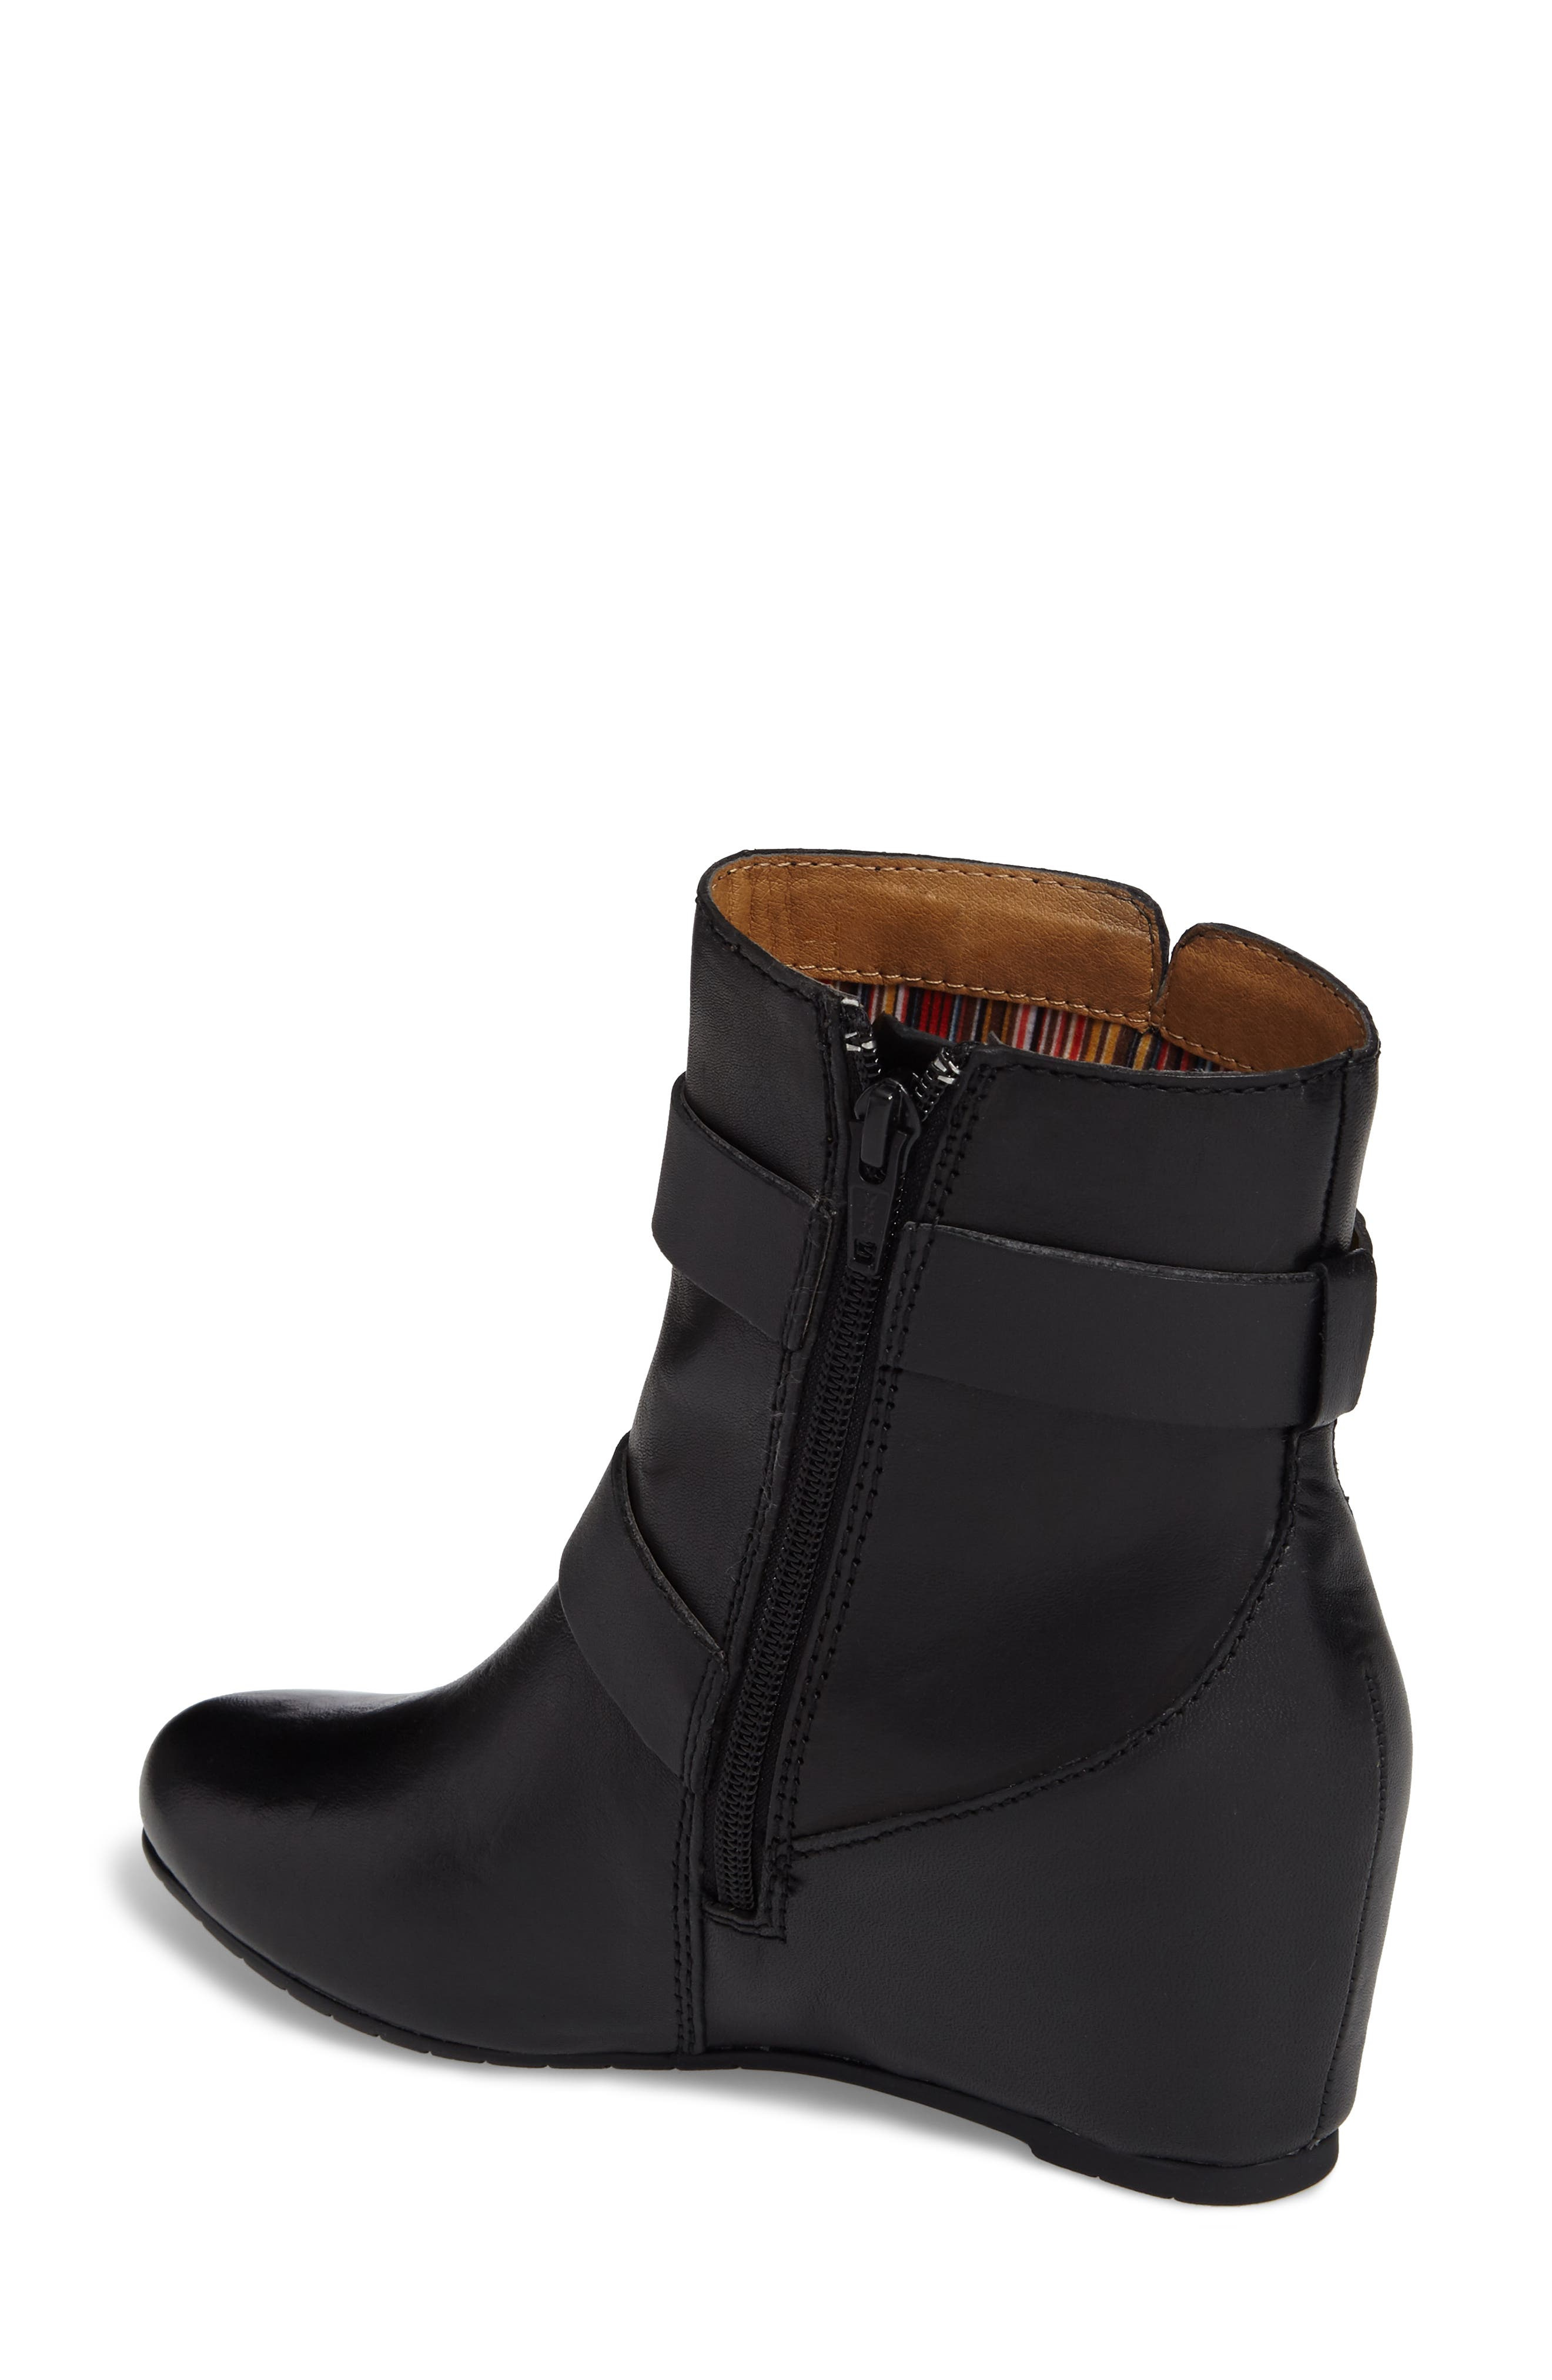 Ramika Wedge Bootie,                             Alternate thumbnail 2, color,                             001